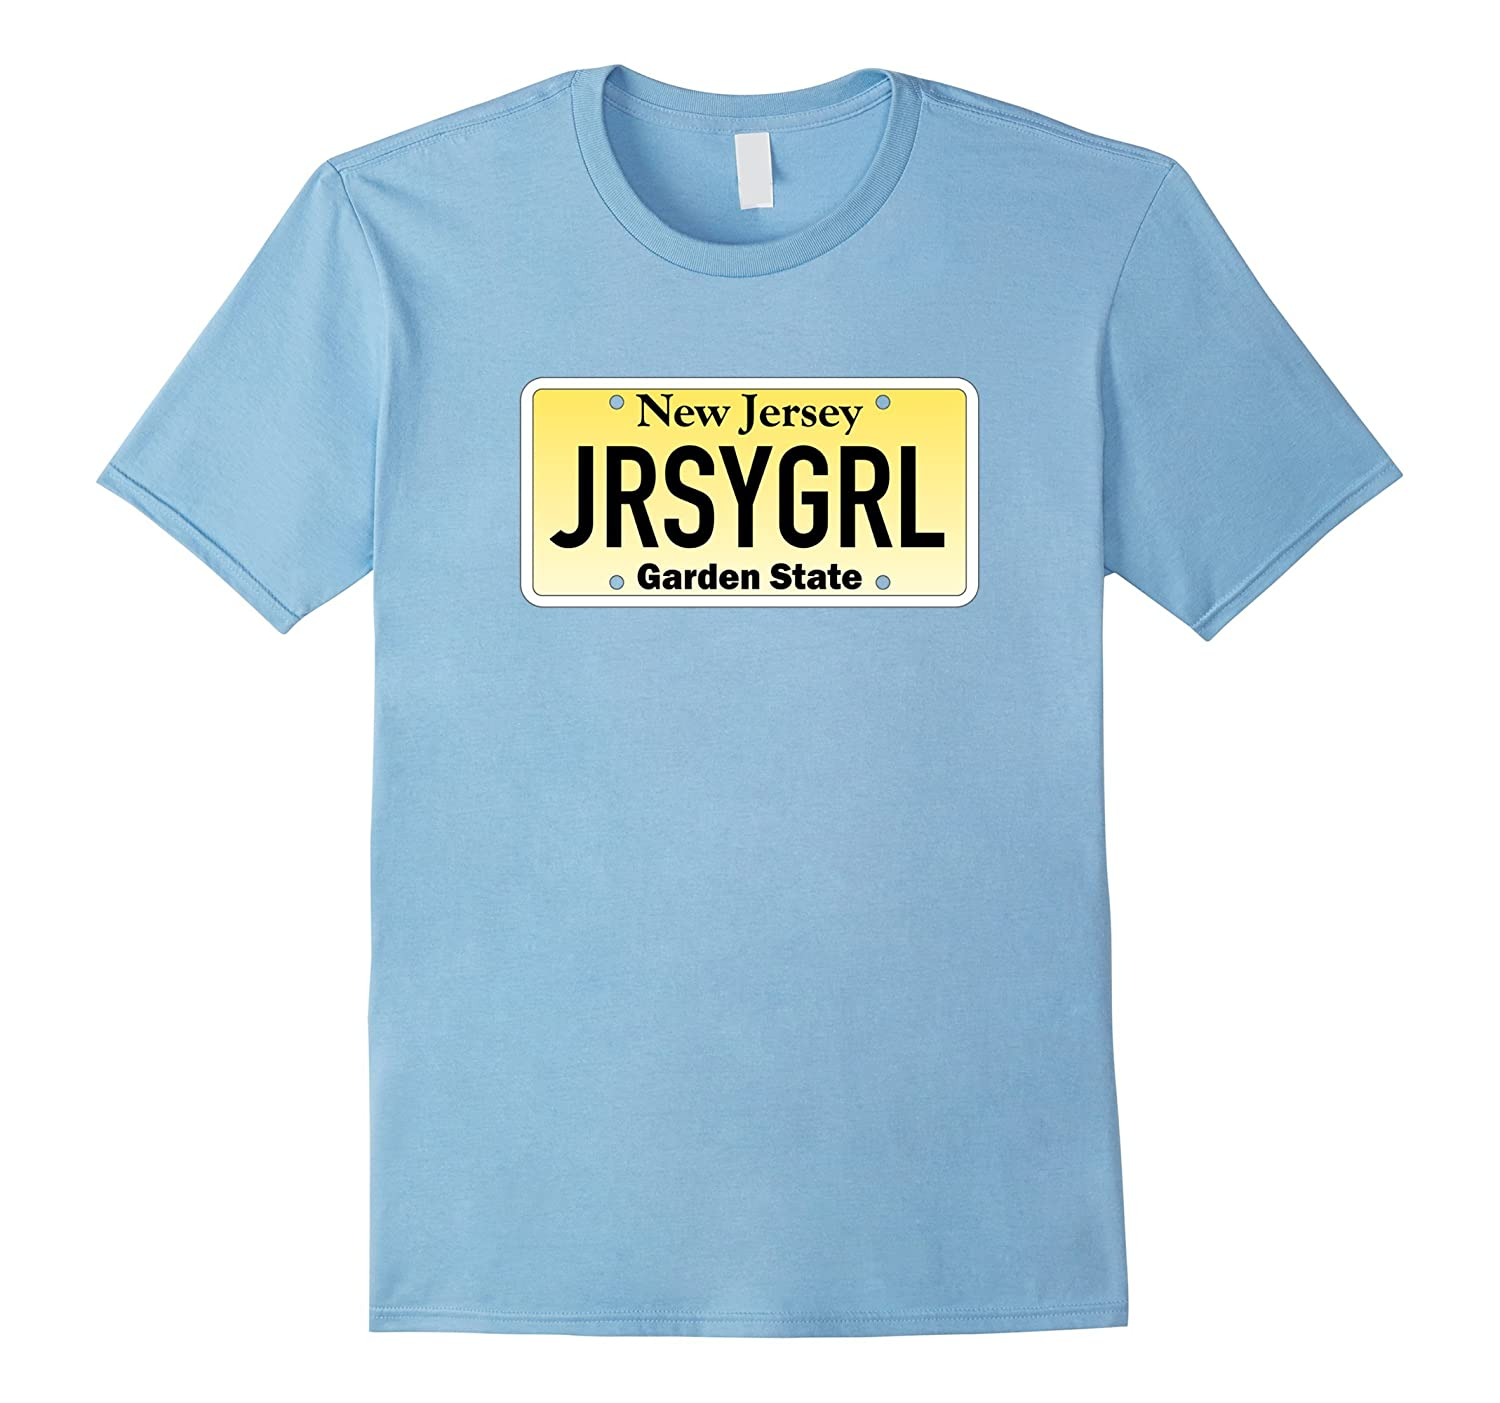 Jersey girl new jersey license plate t shirt rt rateeshirt for T shirt licensing agreement